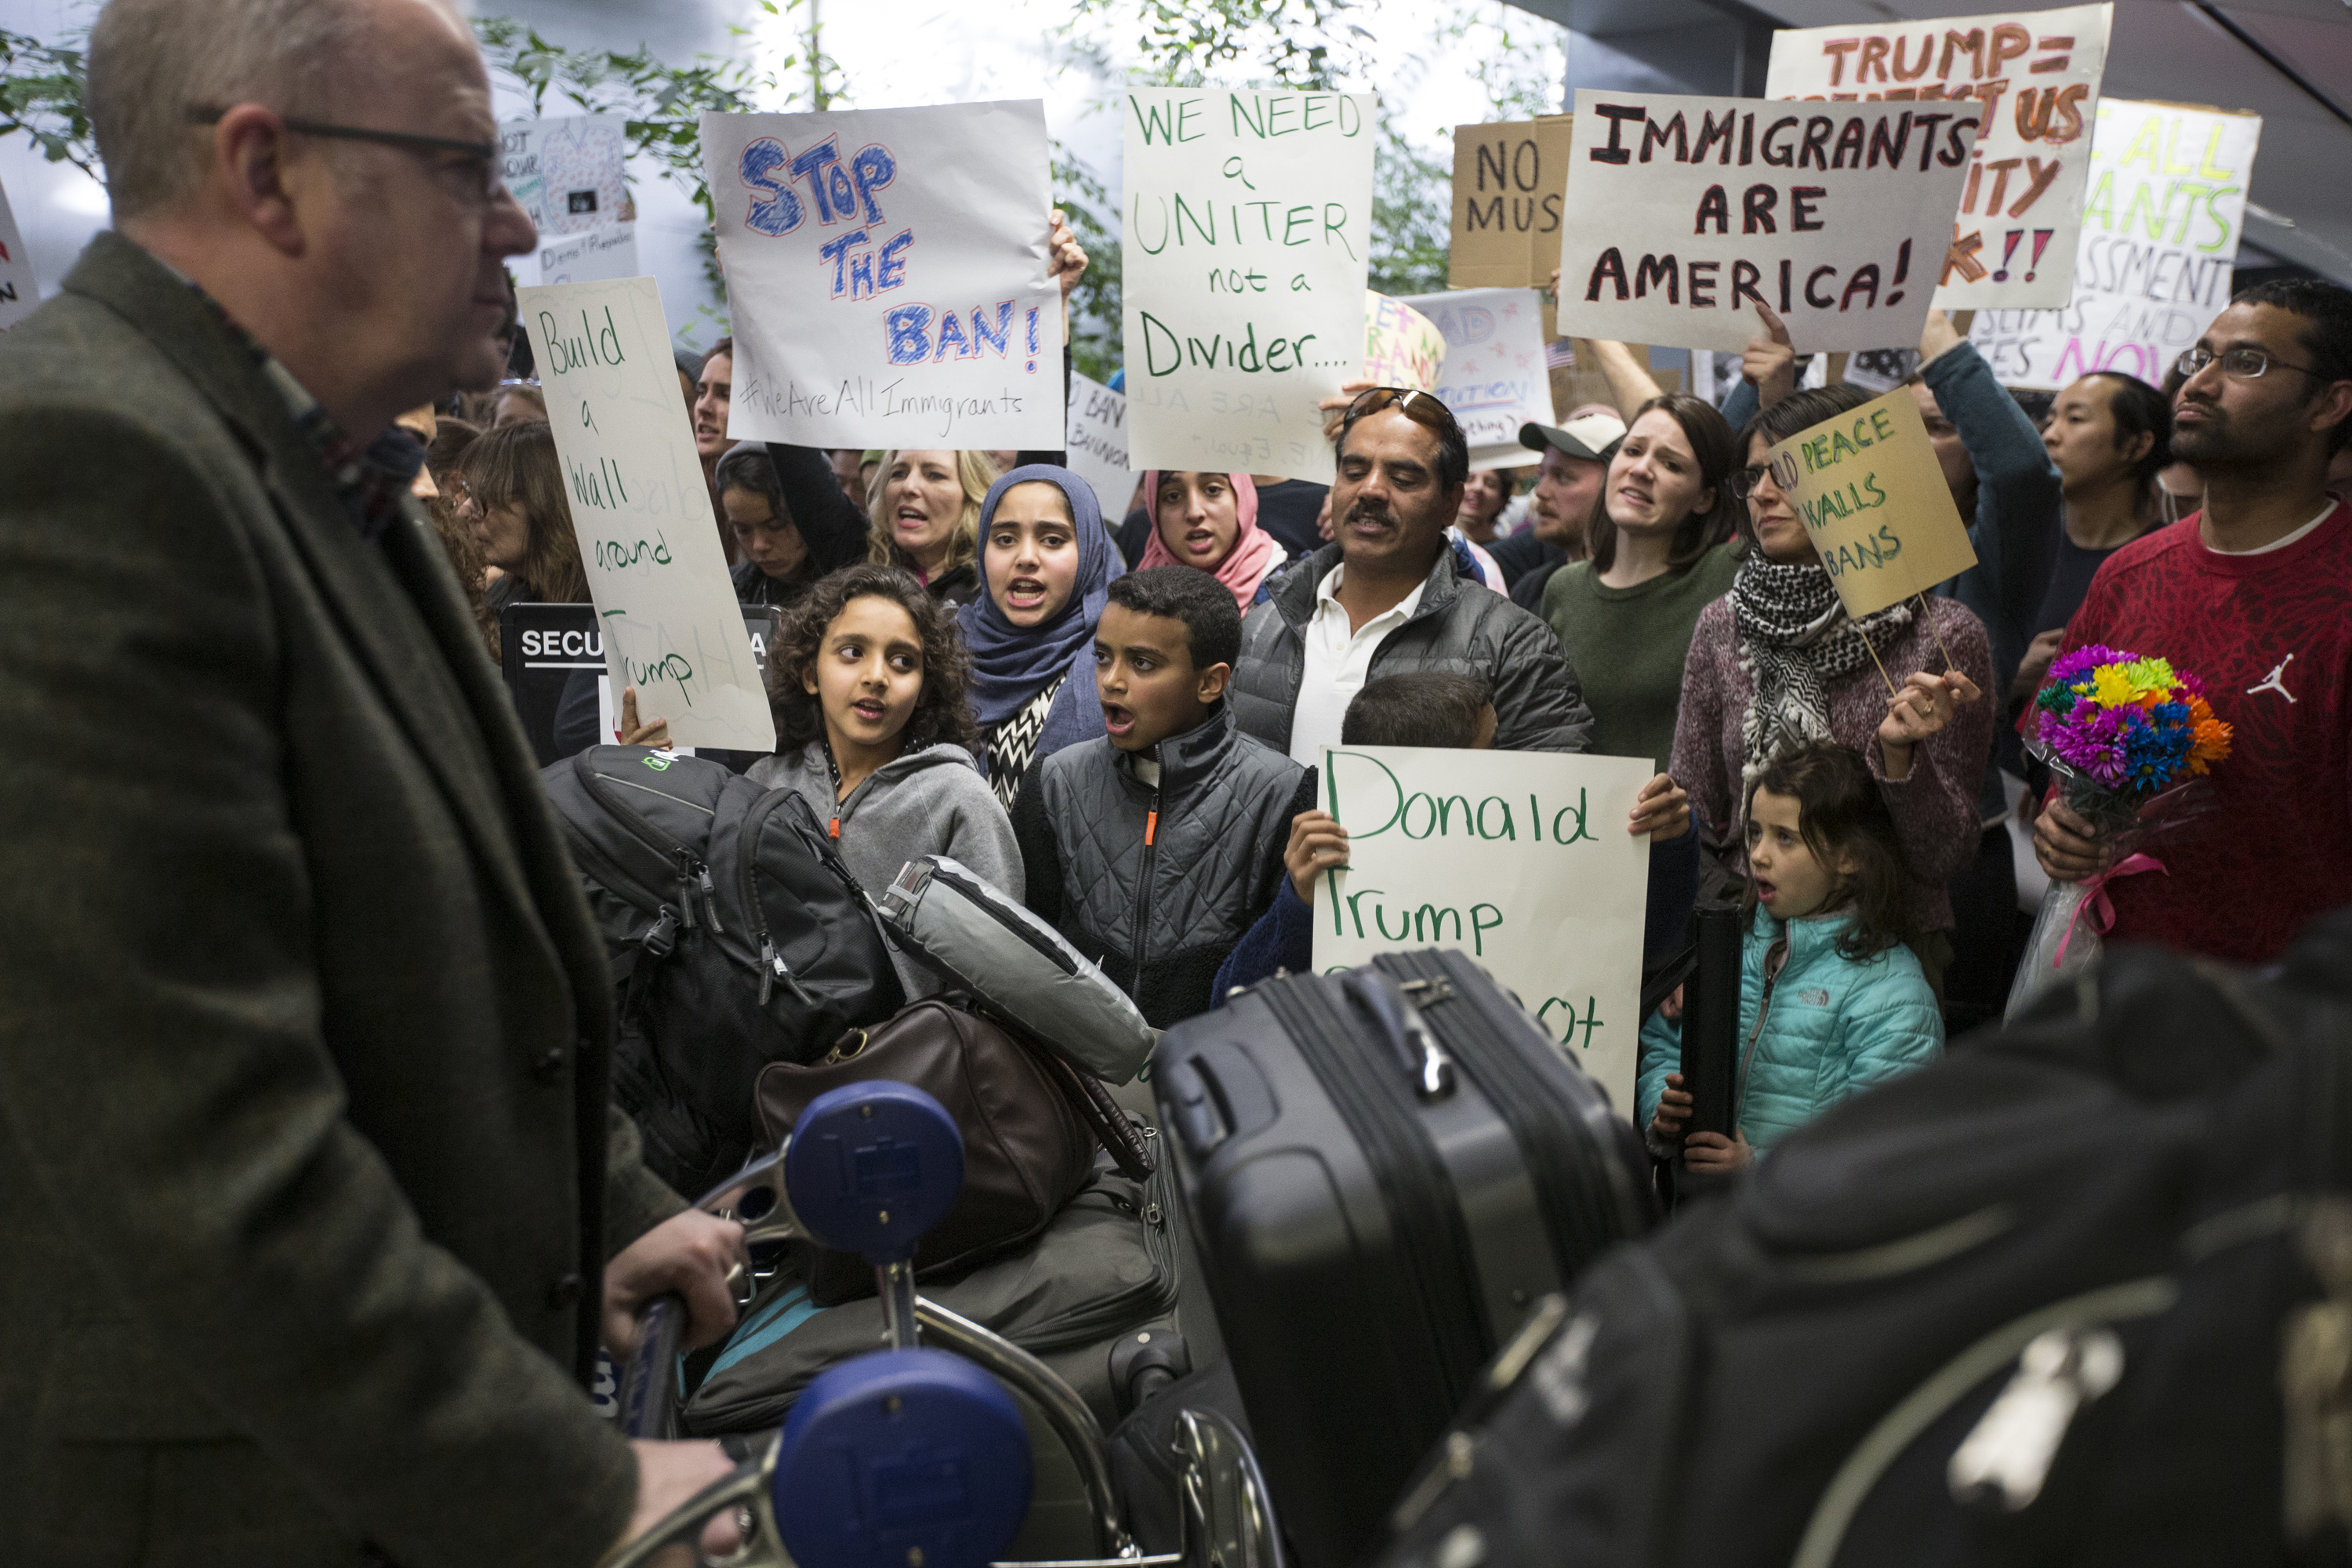 People gather near the exit of customs screening during a protest held at San Franicsco International Airport in San Francisco, Calif. Sunday, January 29, 2017. (Jessica Christian/S.F. Examiner)